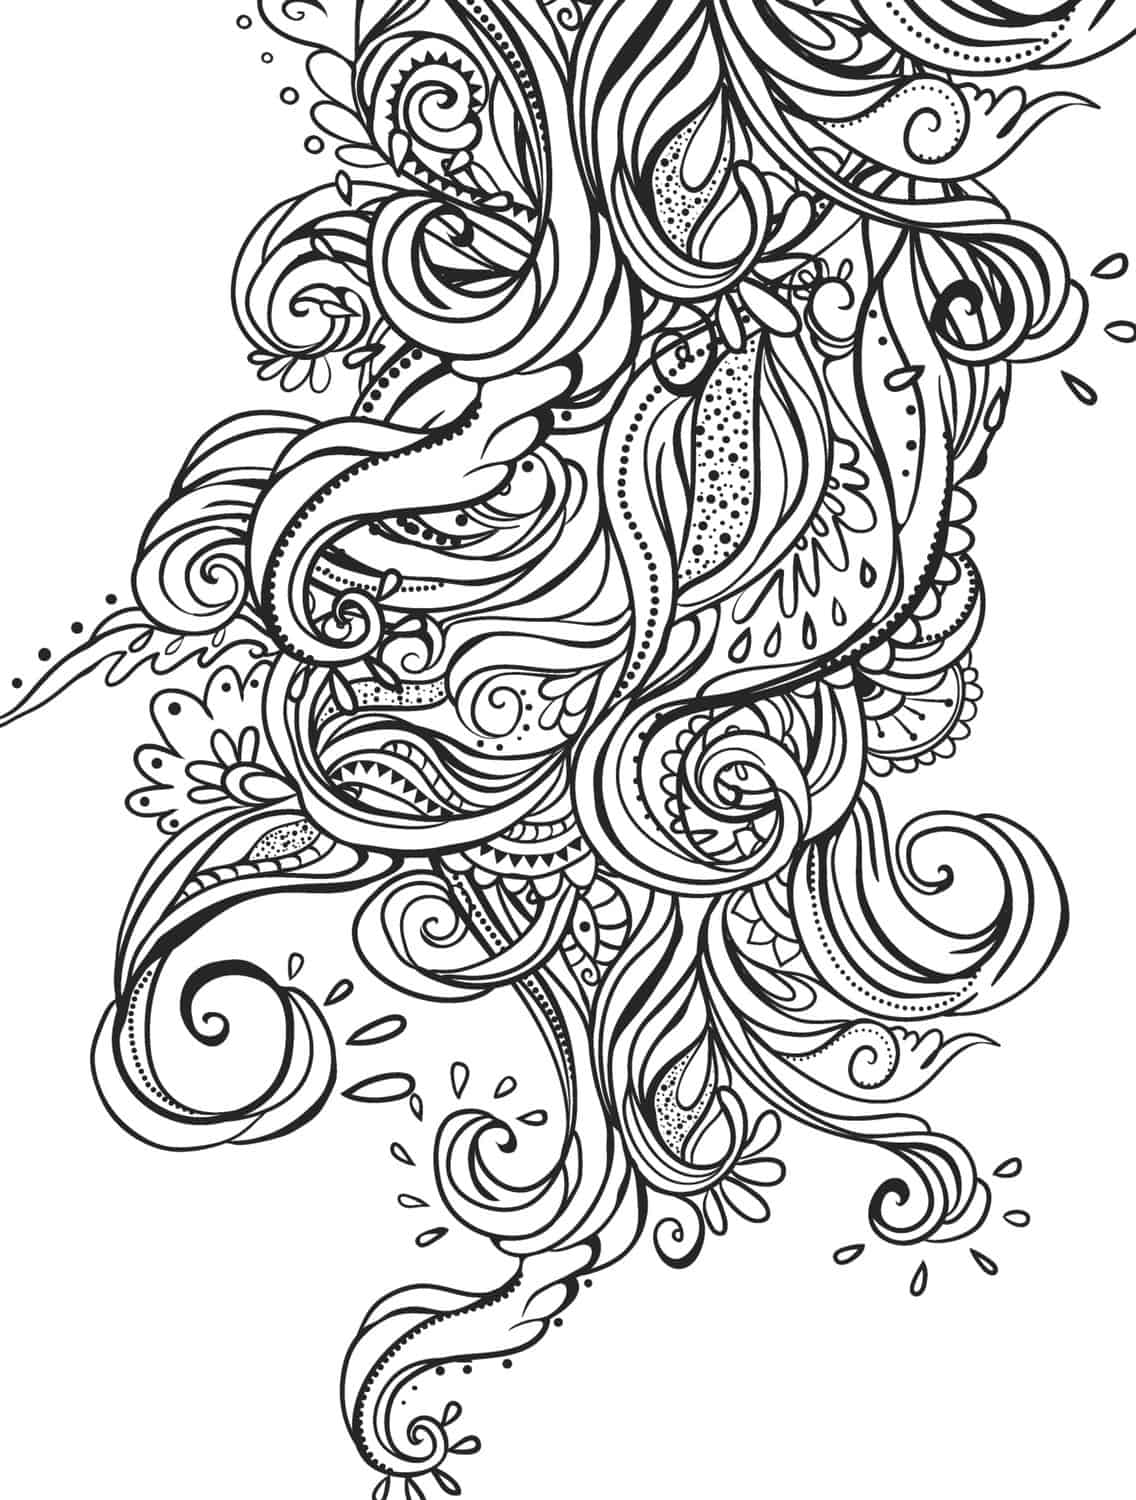 15 Crazy Busy Coloring Pages For Adults Page 5 Of 16 Nerdy Mamma